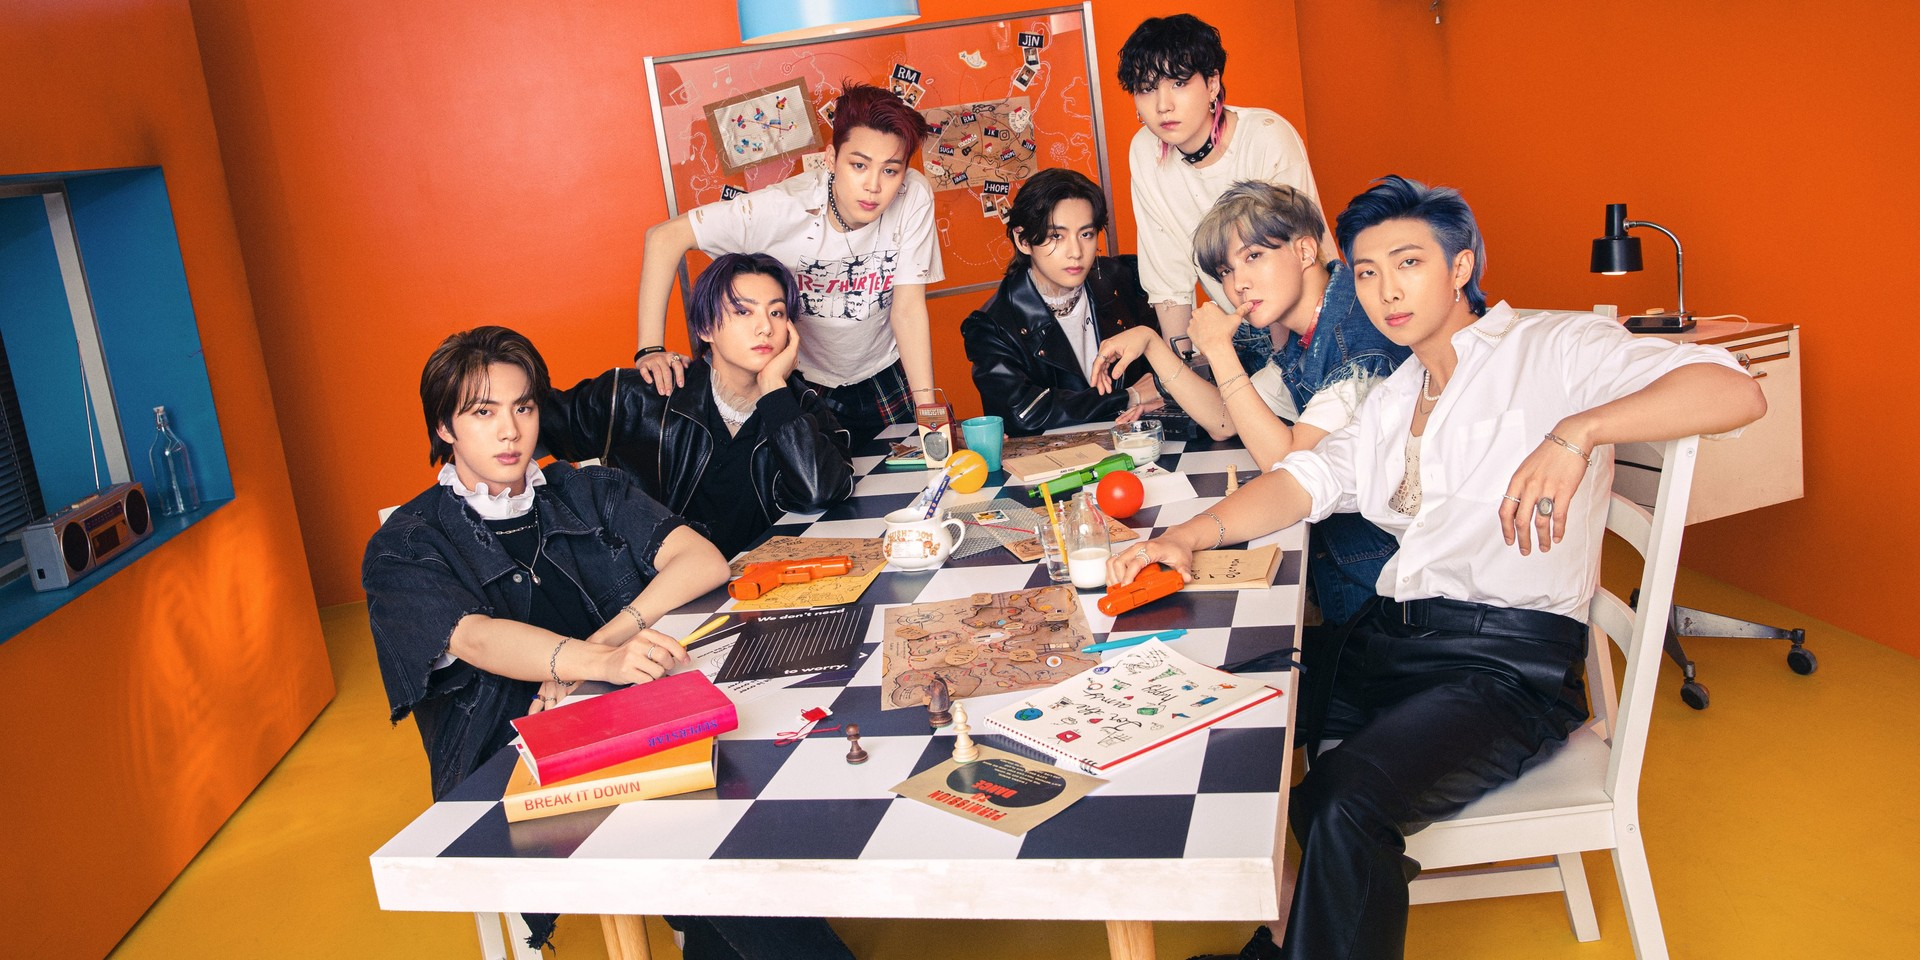 BTS to release new song 'Permission To Dance' with 'Butter' CD single this July